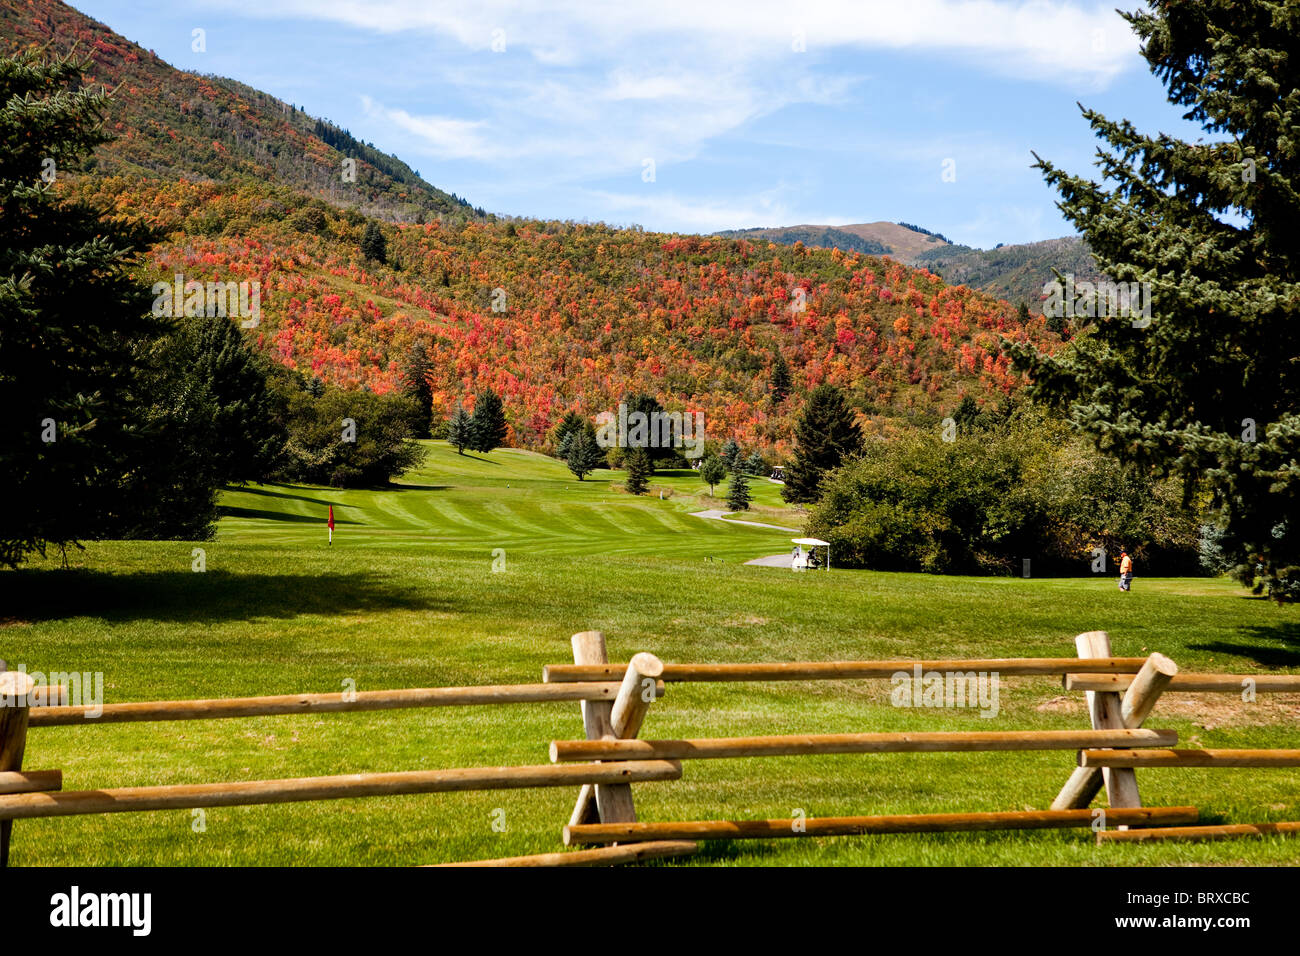 beautiful golf course at the edge of the forest, taken during the fall with autumn colors in the back ground - Stock Image